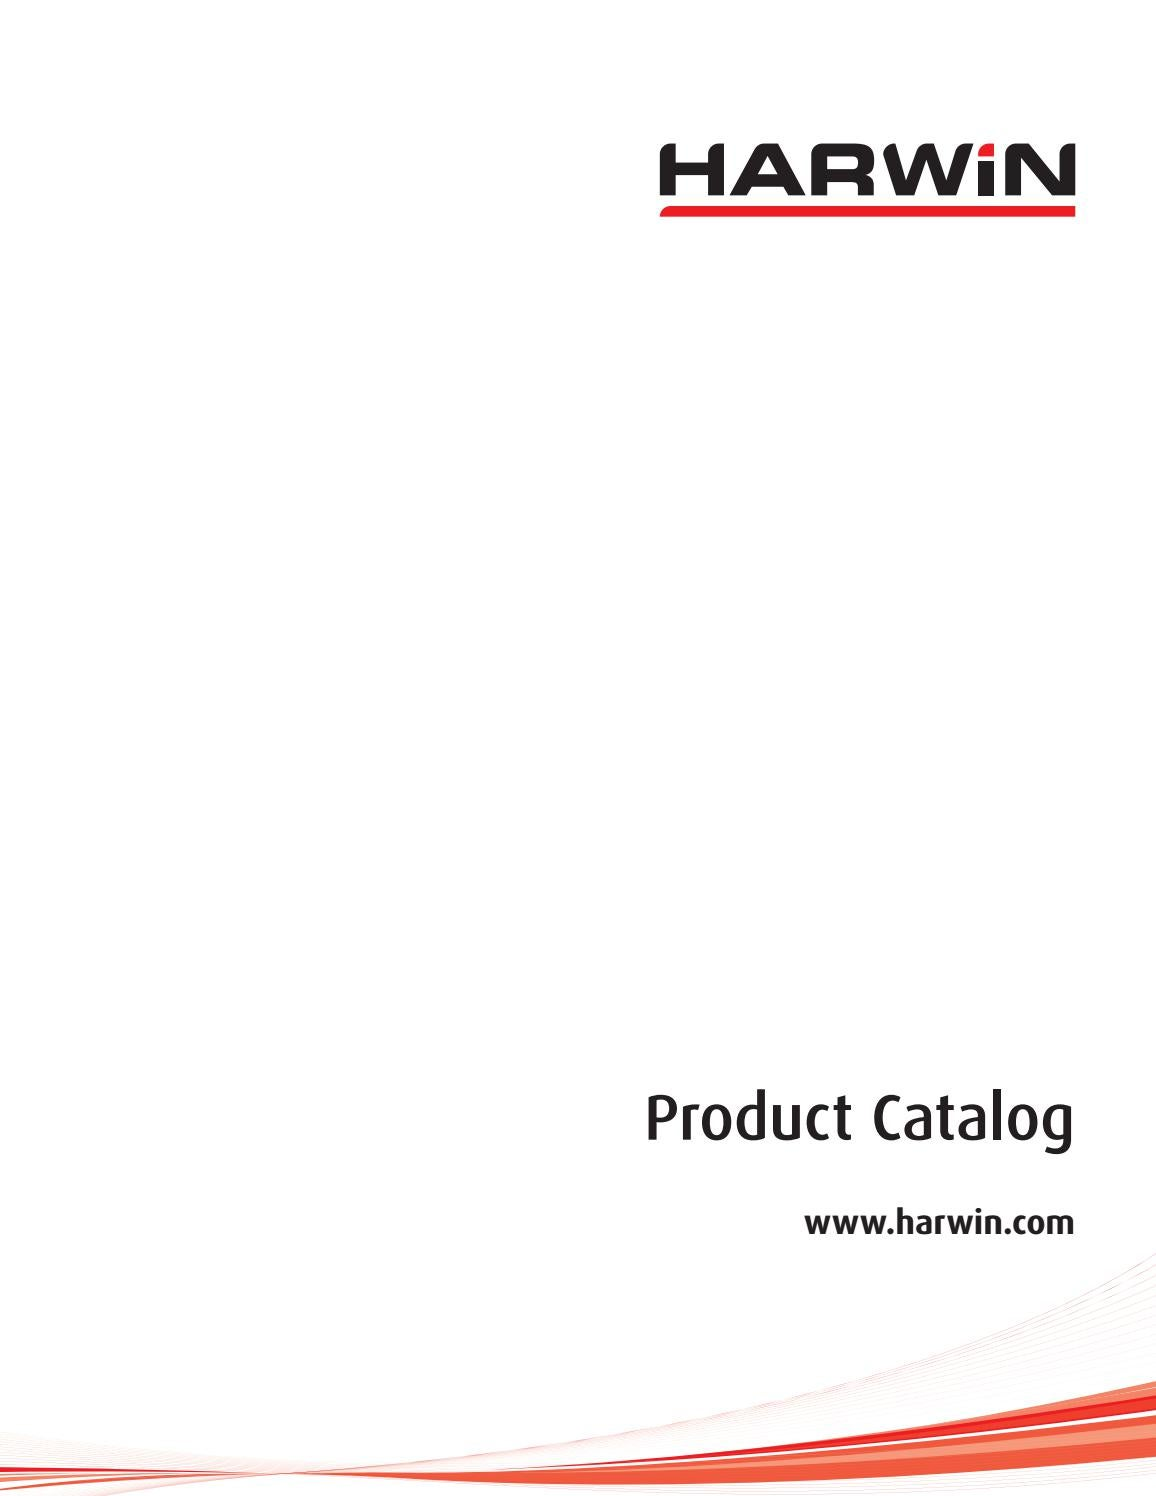 Pack Of 100 Harwin Headers /& Wire Housings 1.25MM M CONTACT 26AWG